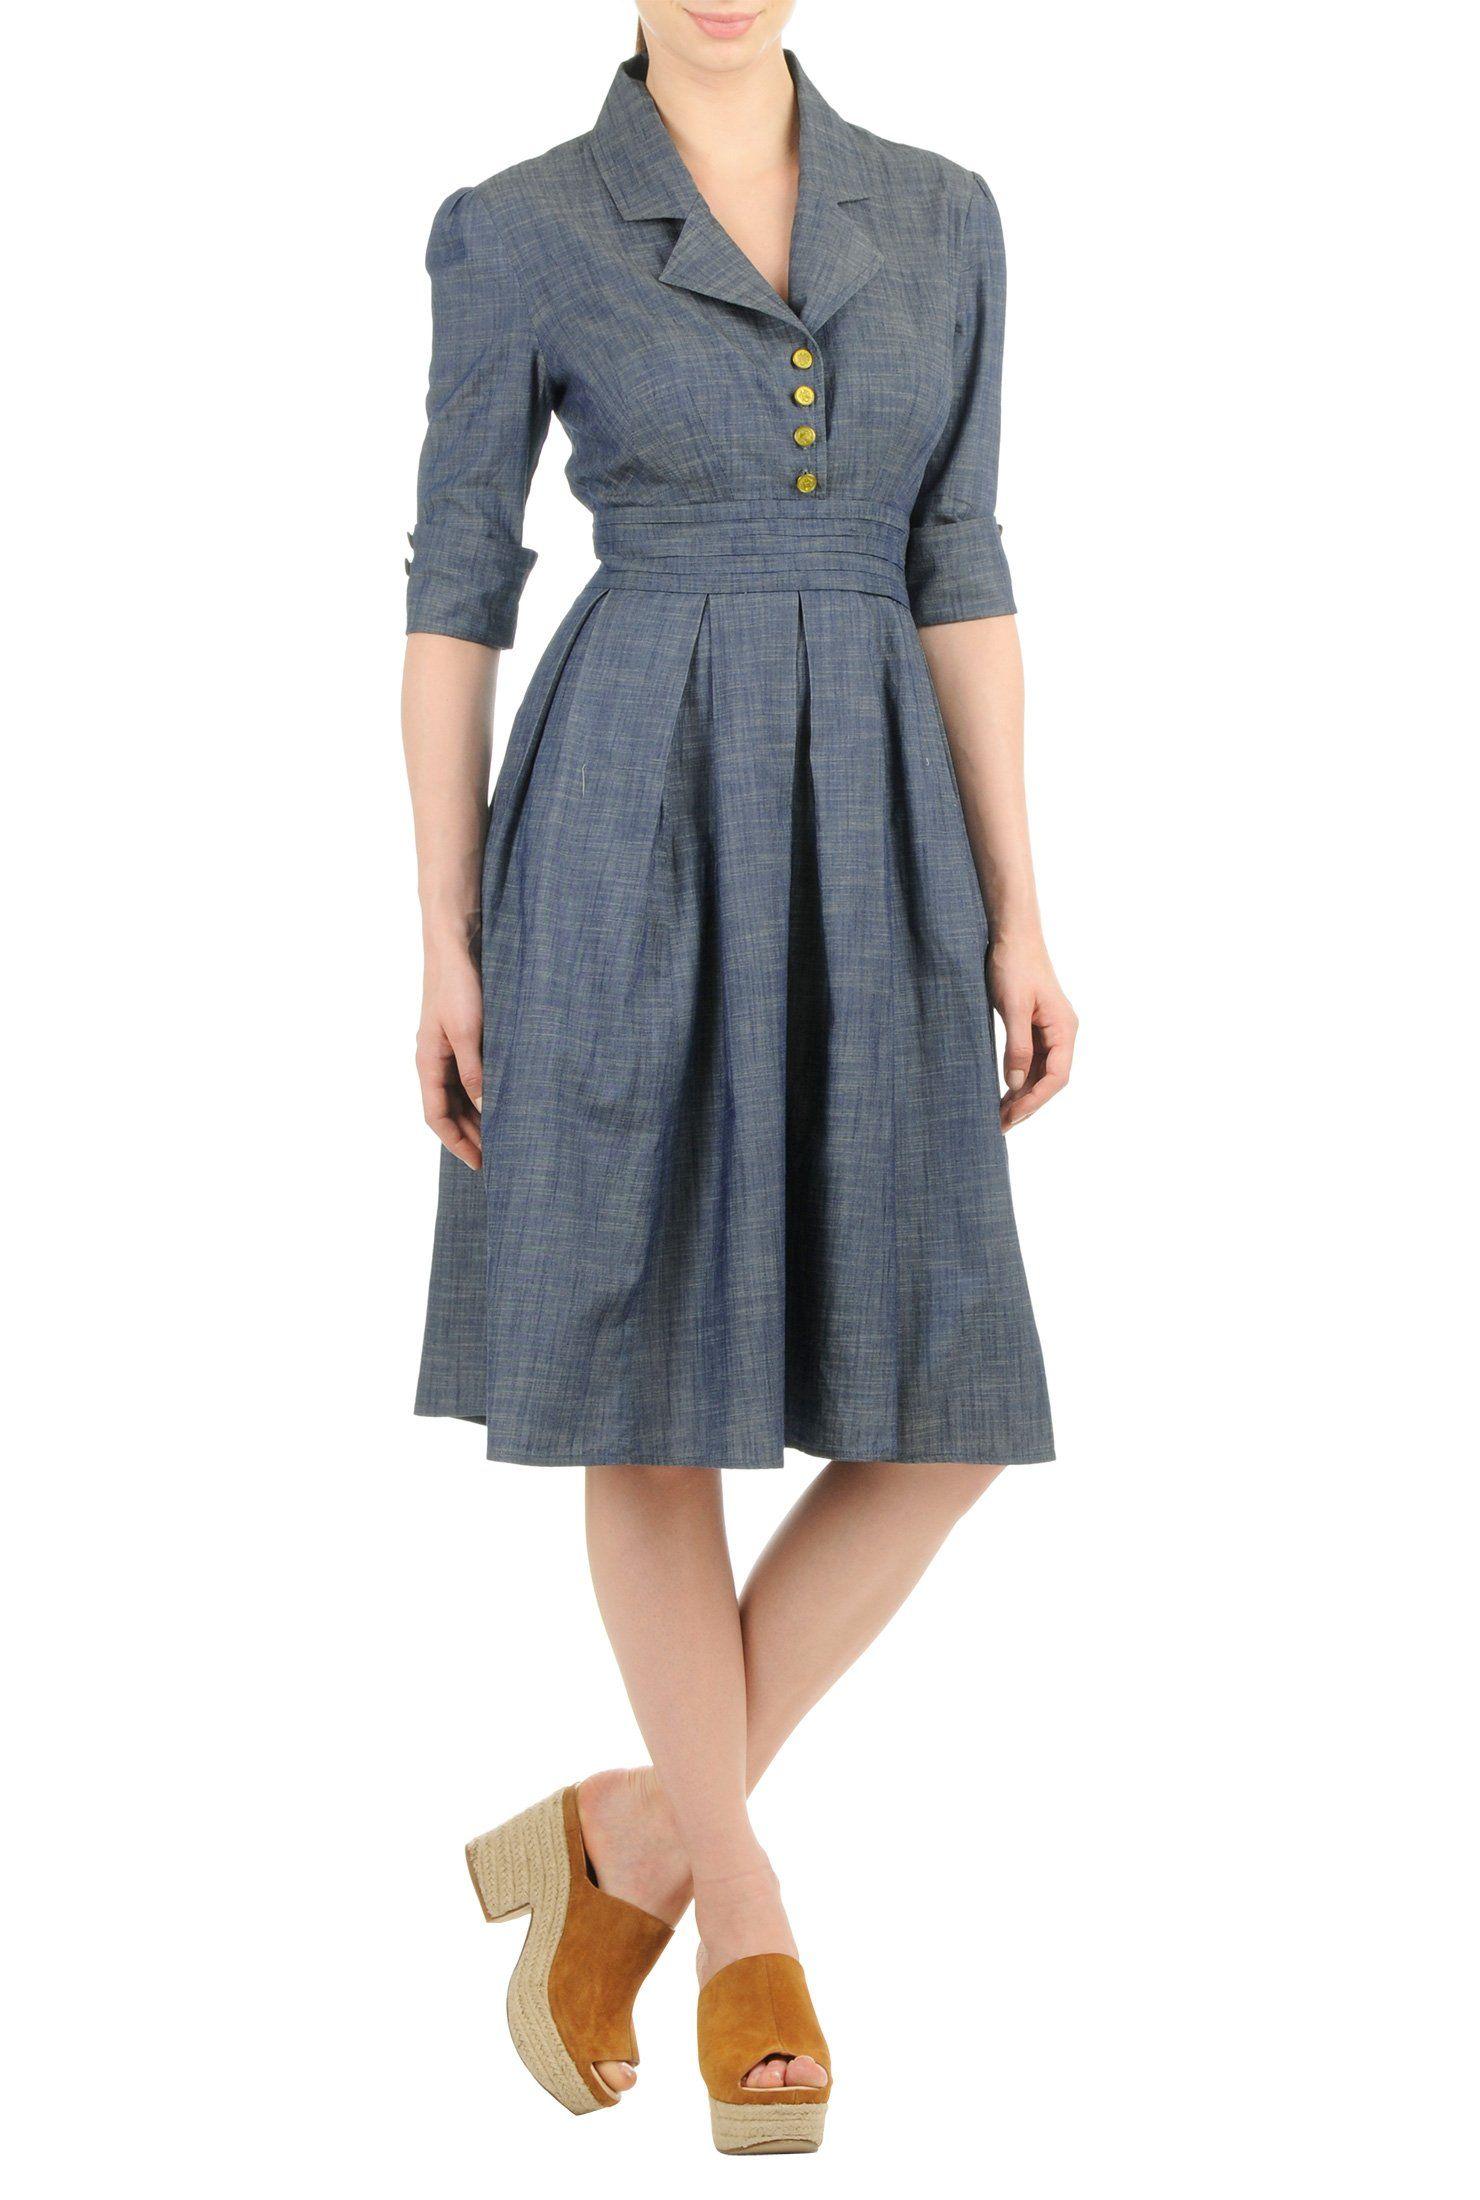 Eshakti womenus retro chambray shirtdress s short indigo slips on